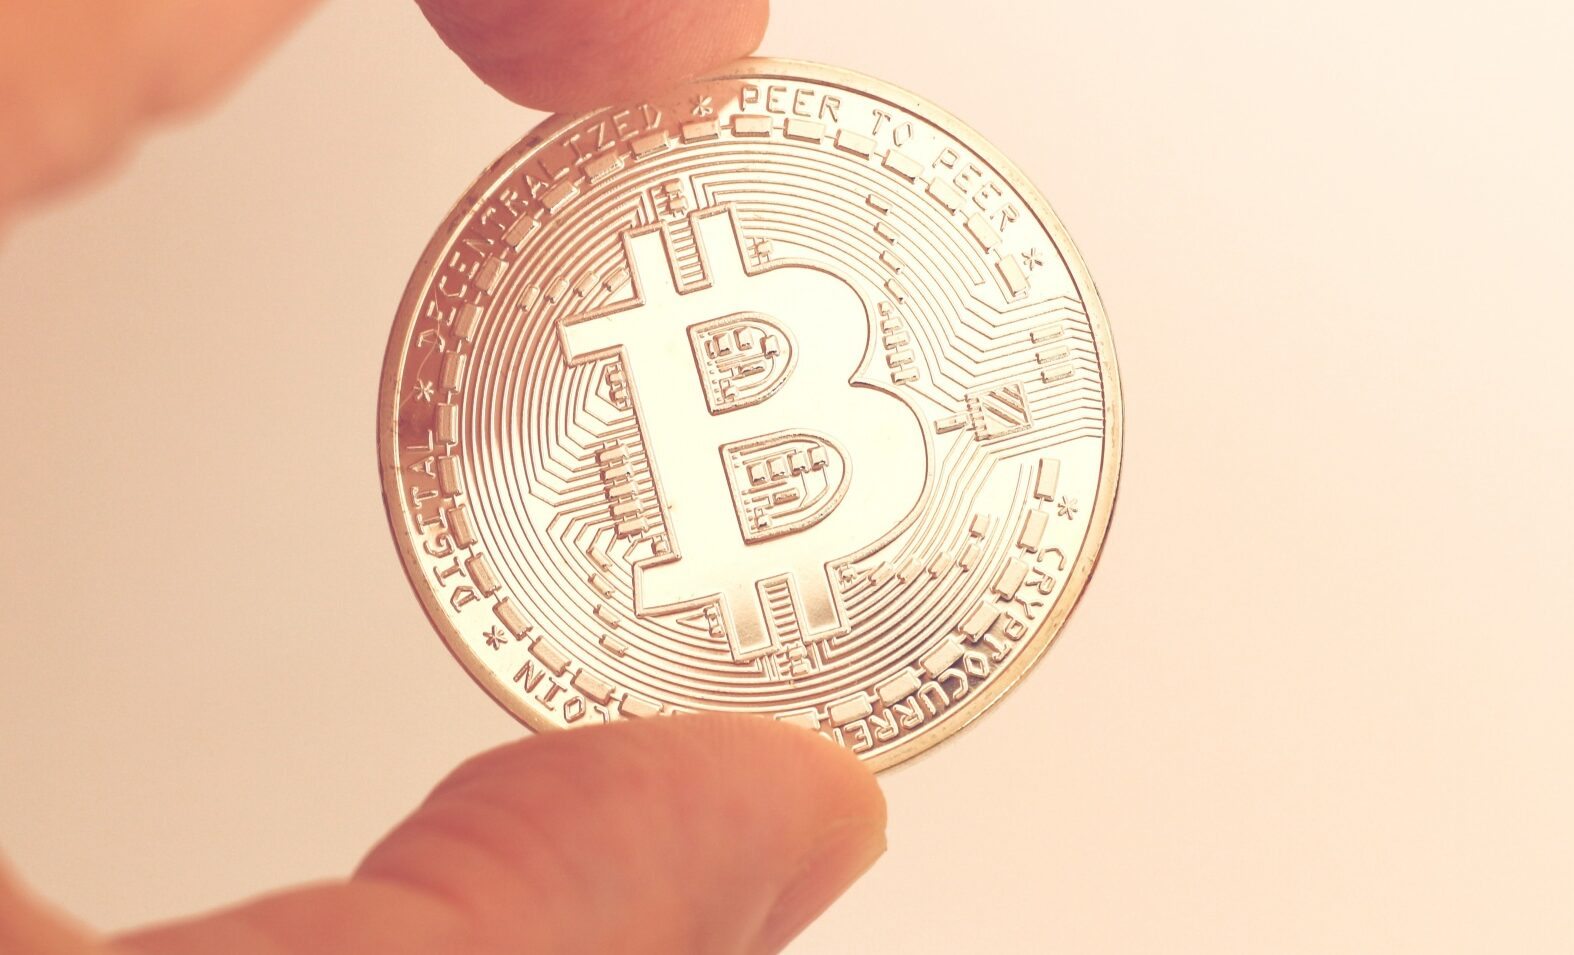 a gold physical bitcoin held between two fingers